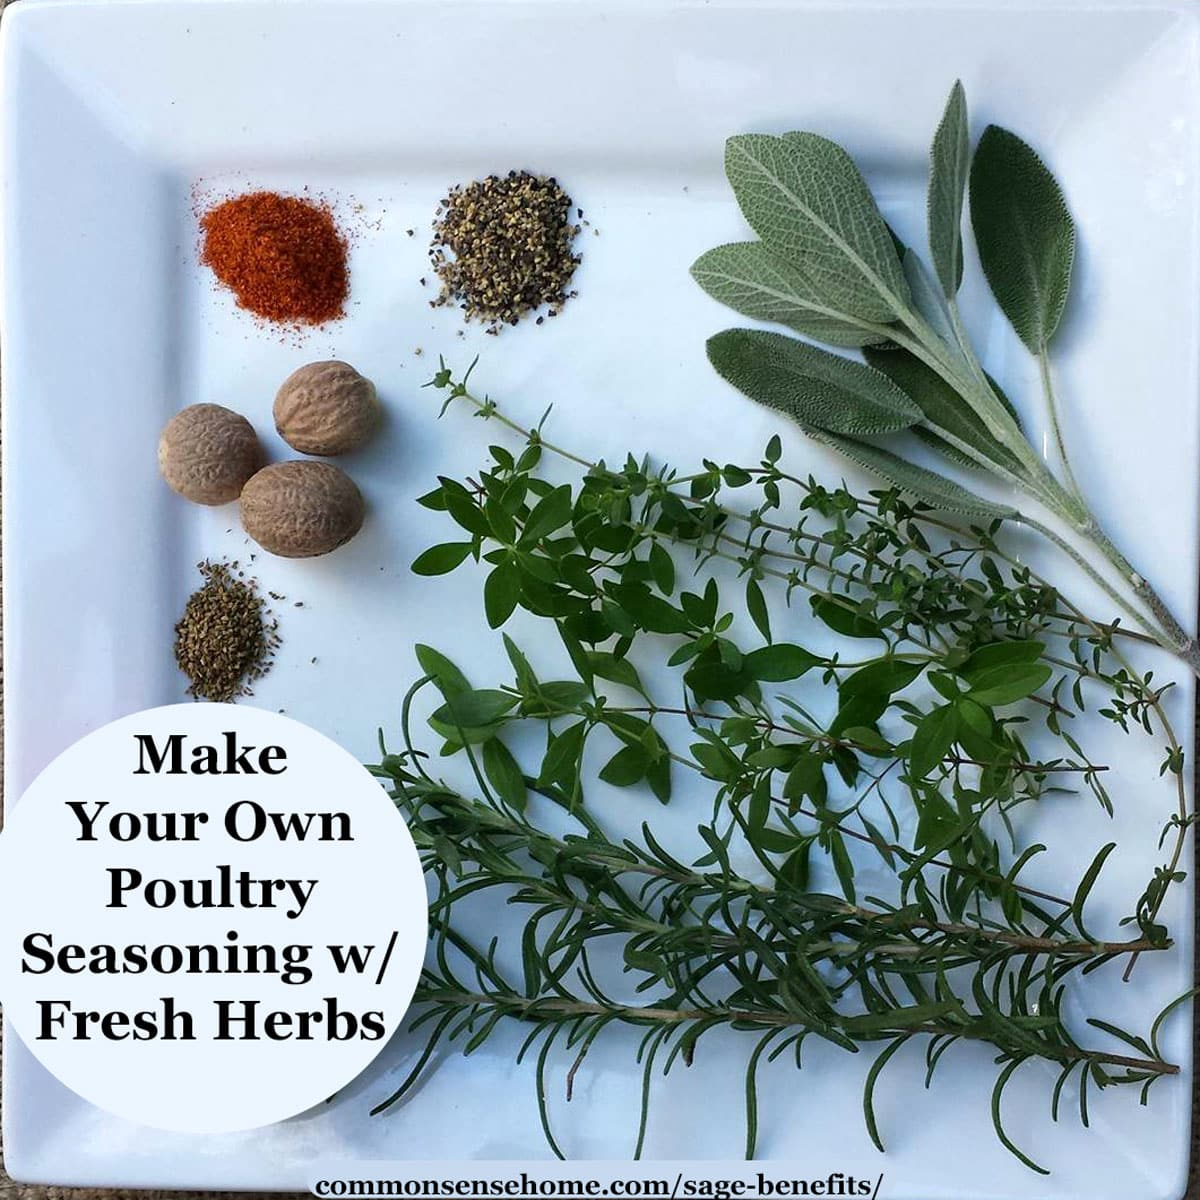 Ingredients for sage poultry seasoning made with fresh herbs